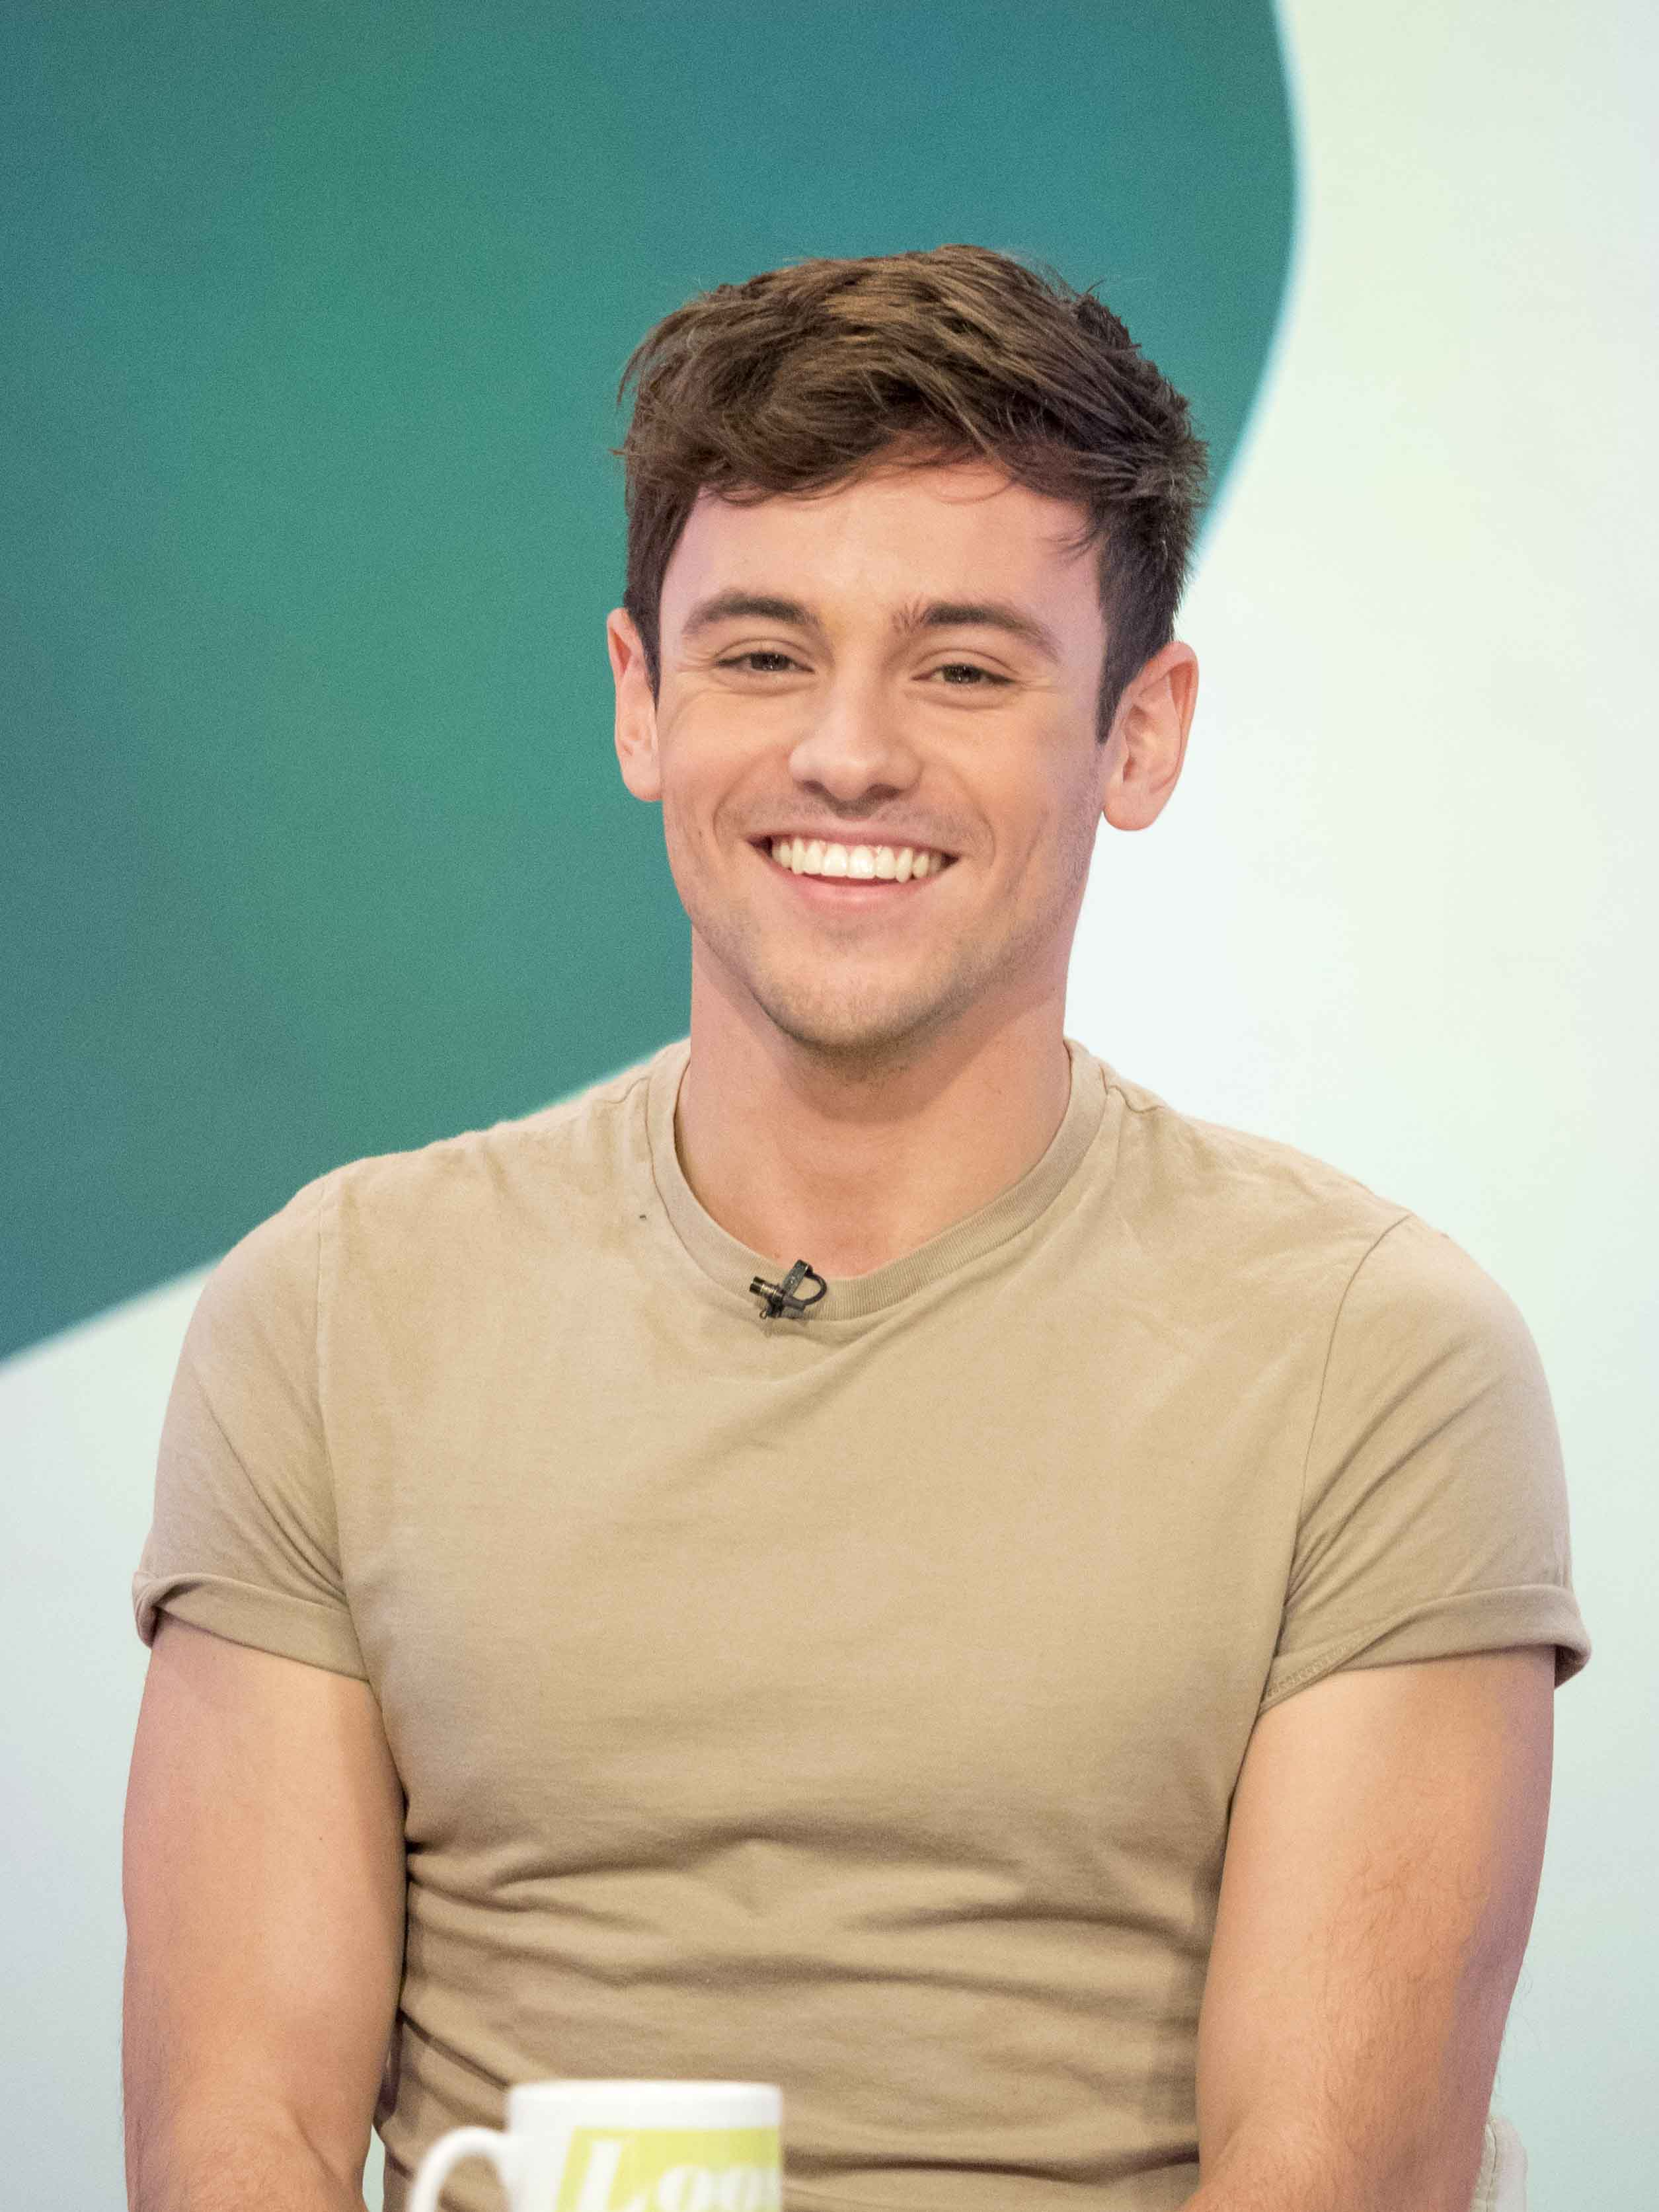 I Could End Up In A Wheelchair Tom Daley Reveals Impact Of His Training